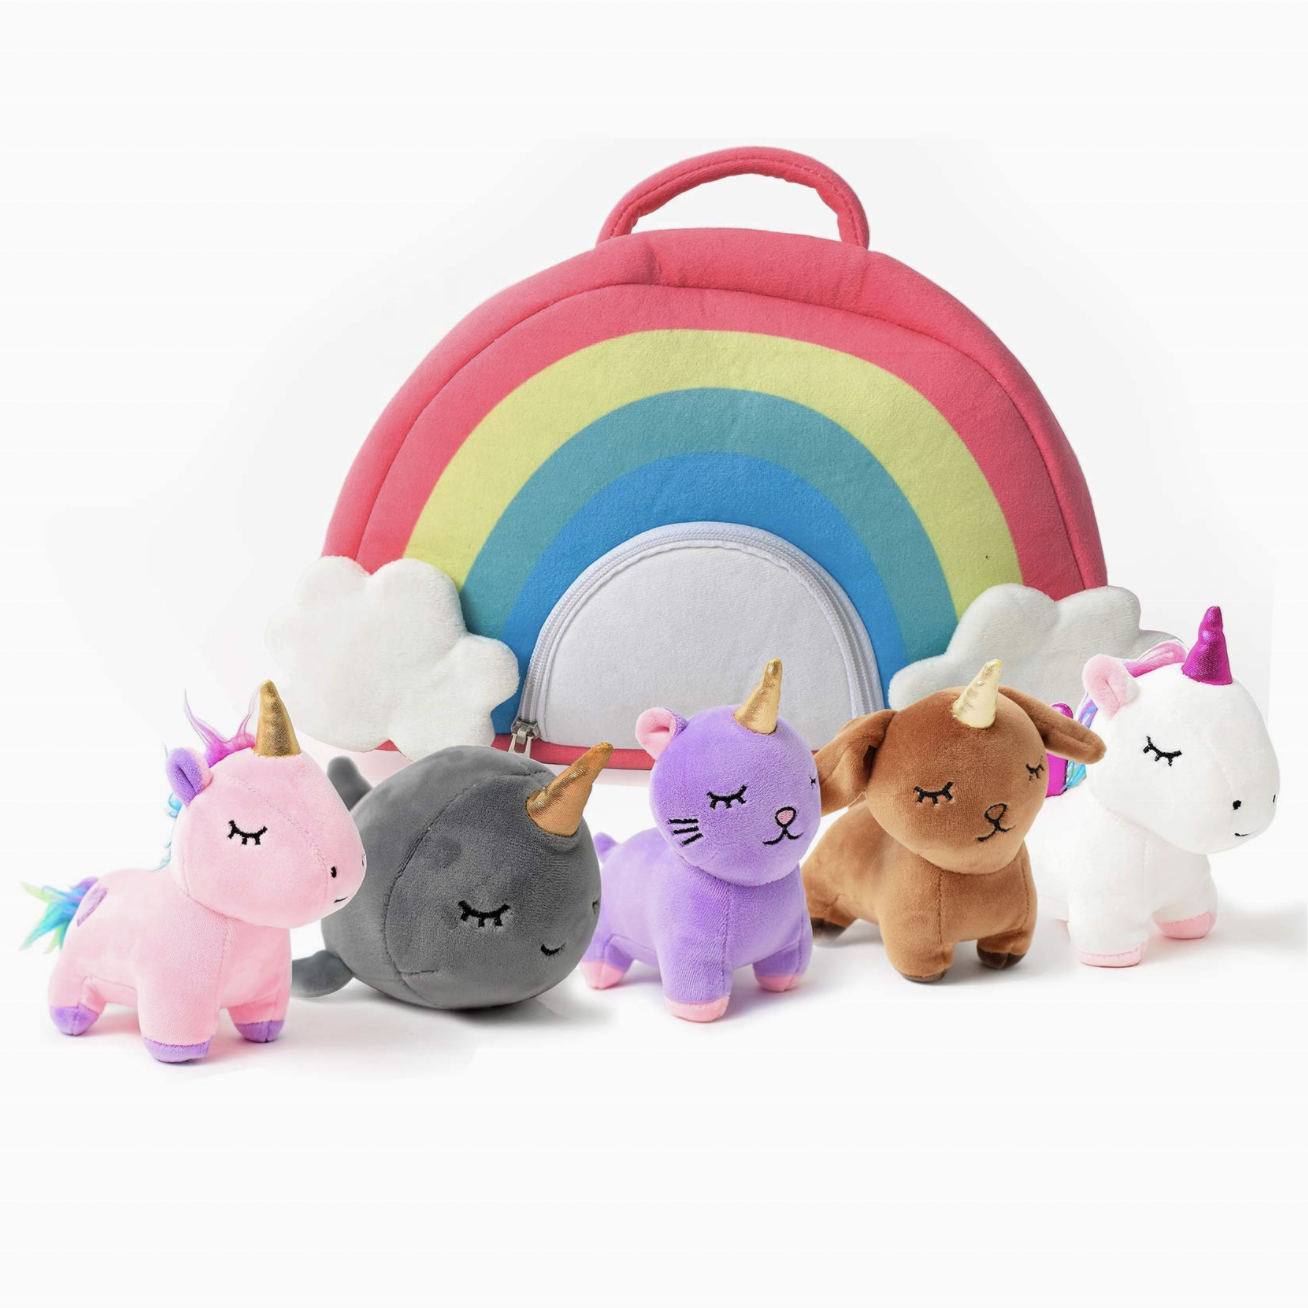 Unicorn Toys Stuffed Animal Gift Plush Set with Rainbow Case 5 Piece soft animal with 2 Unicorns, Kitty, Puppy, Narwhal,Toddler